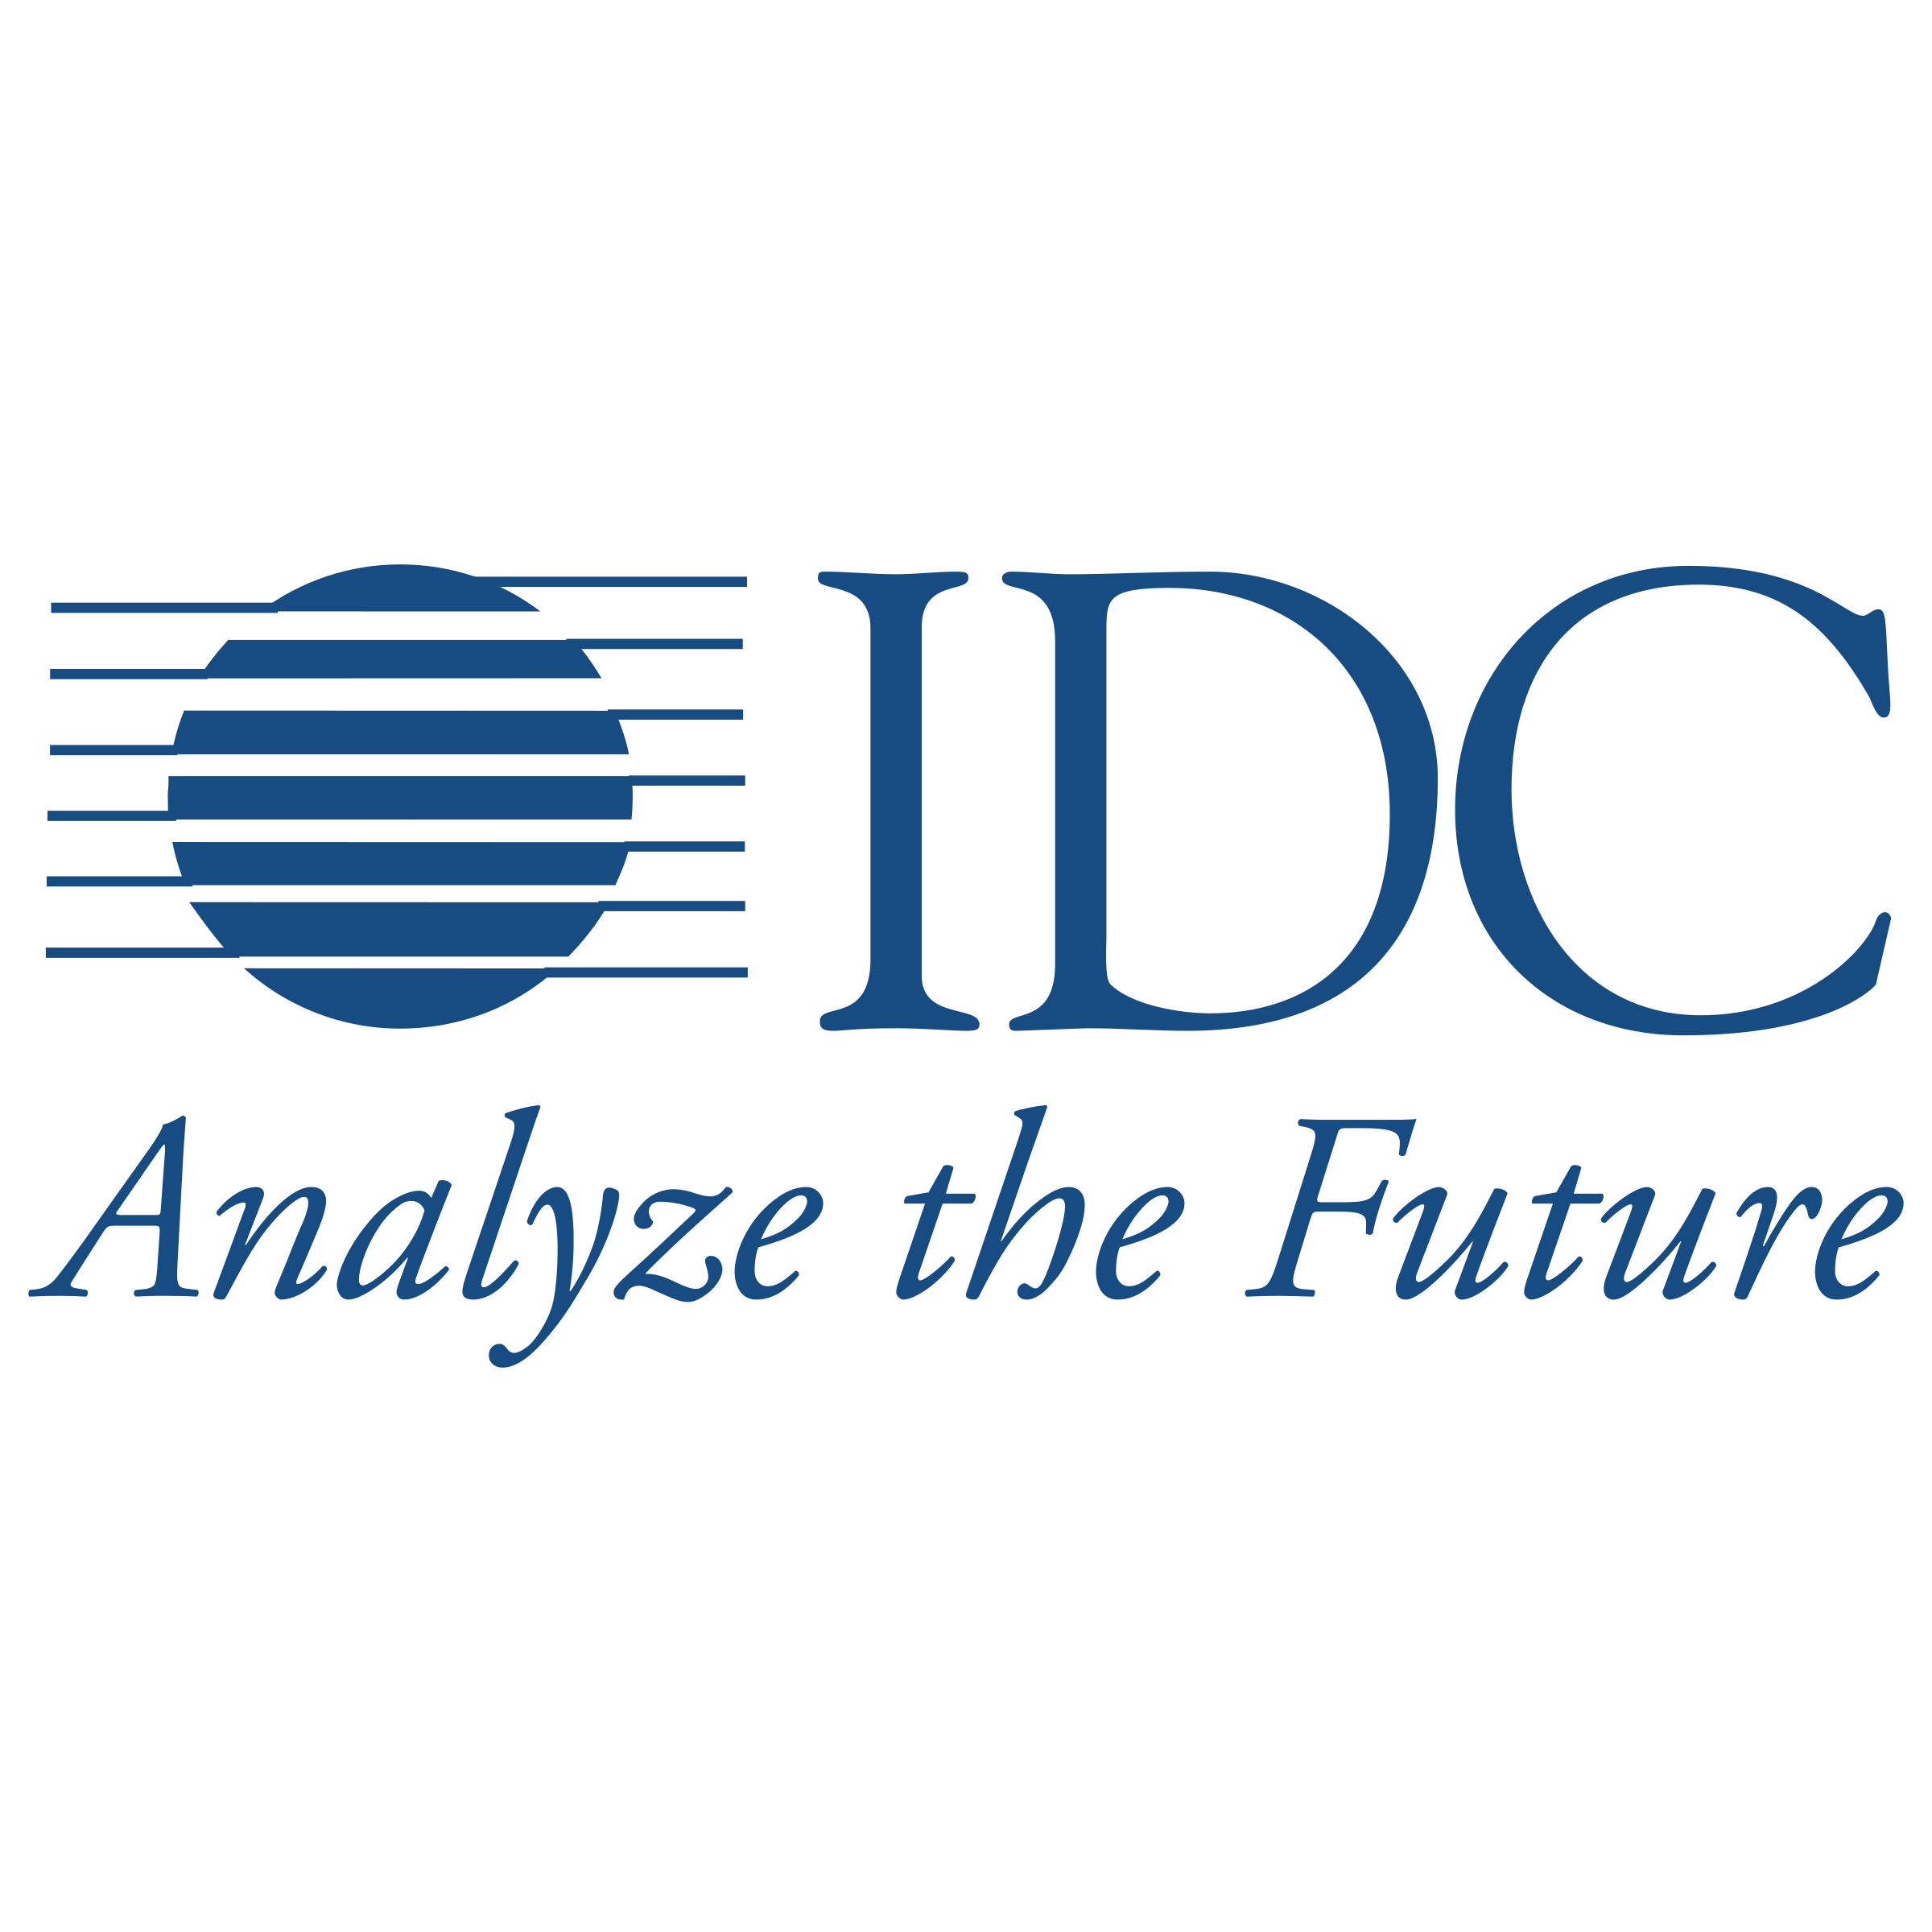 idc-logo-png-transparent